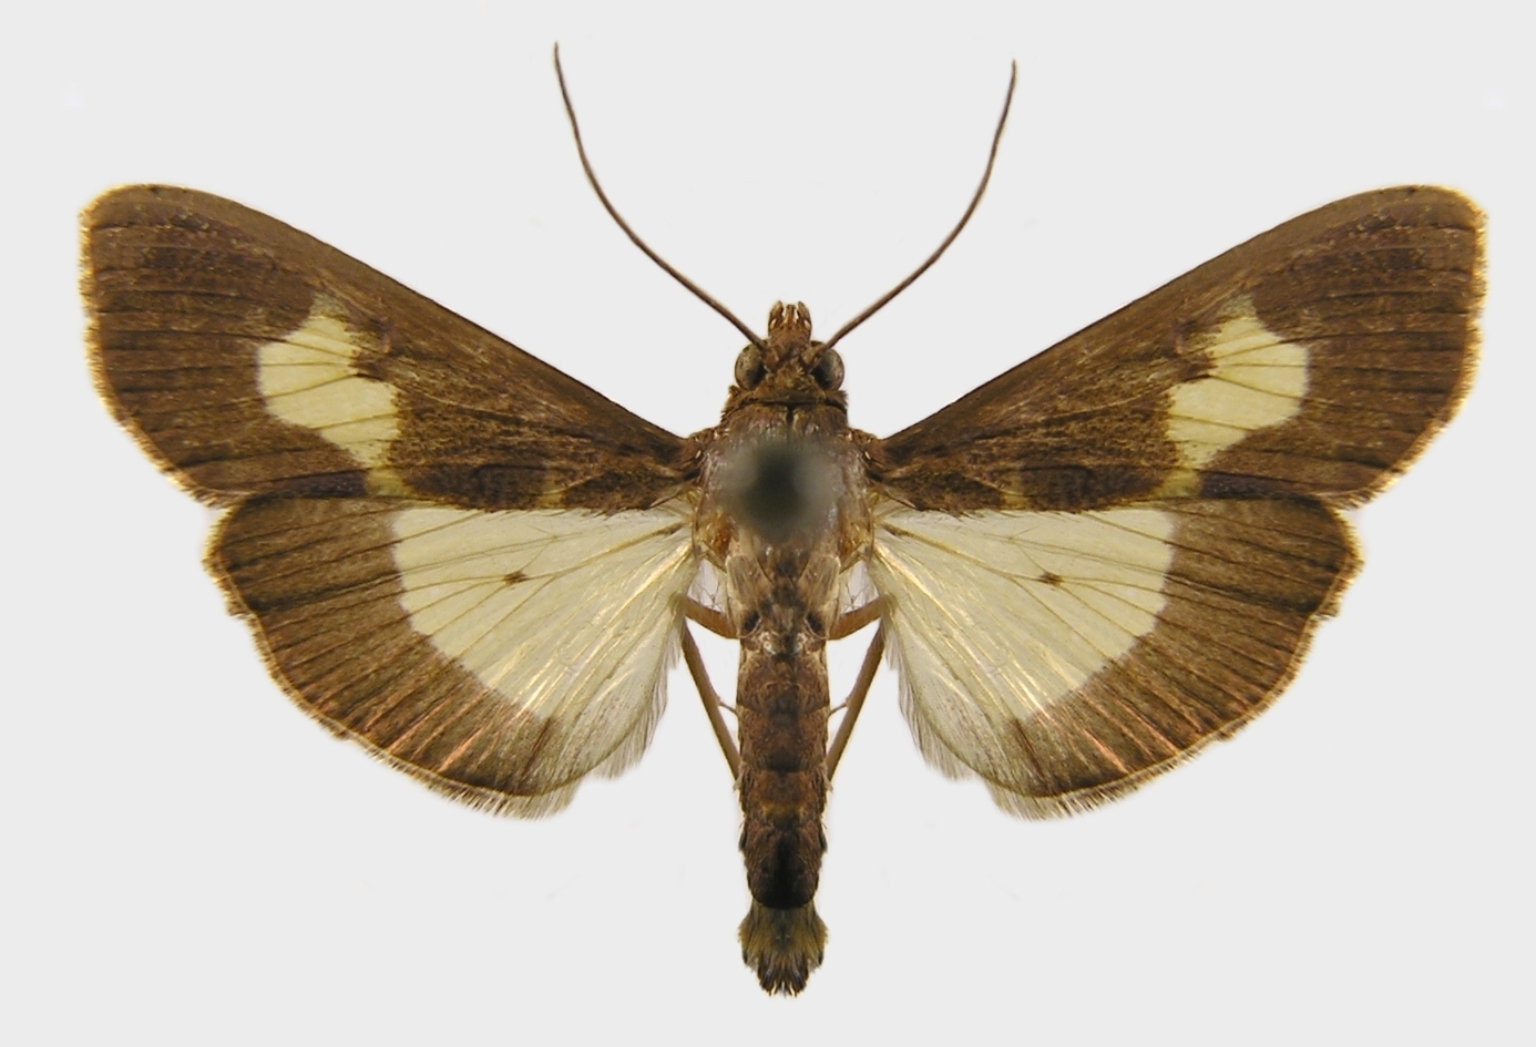 File:Diaphania nitidalis adult.jpg. Size of this preview: ...